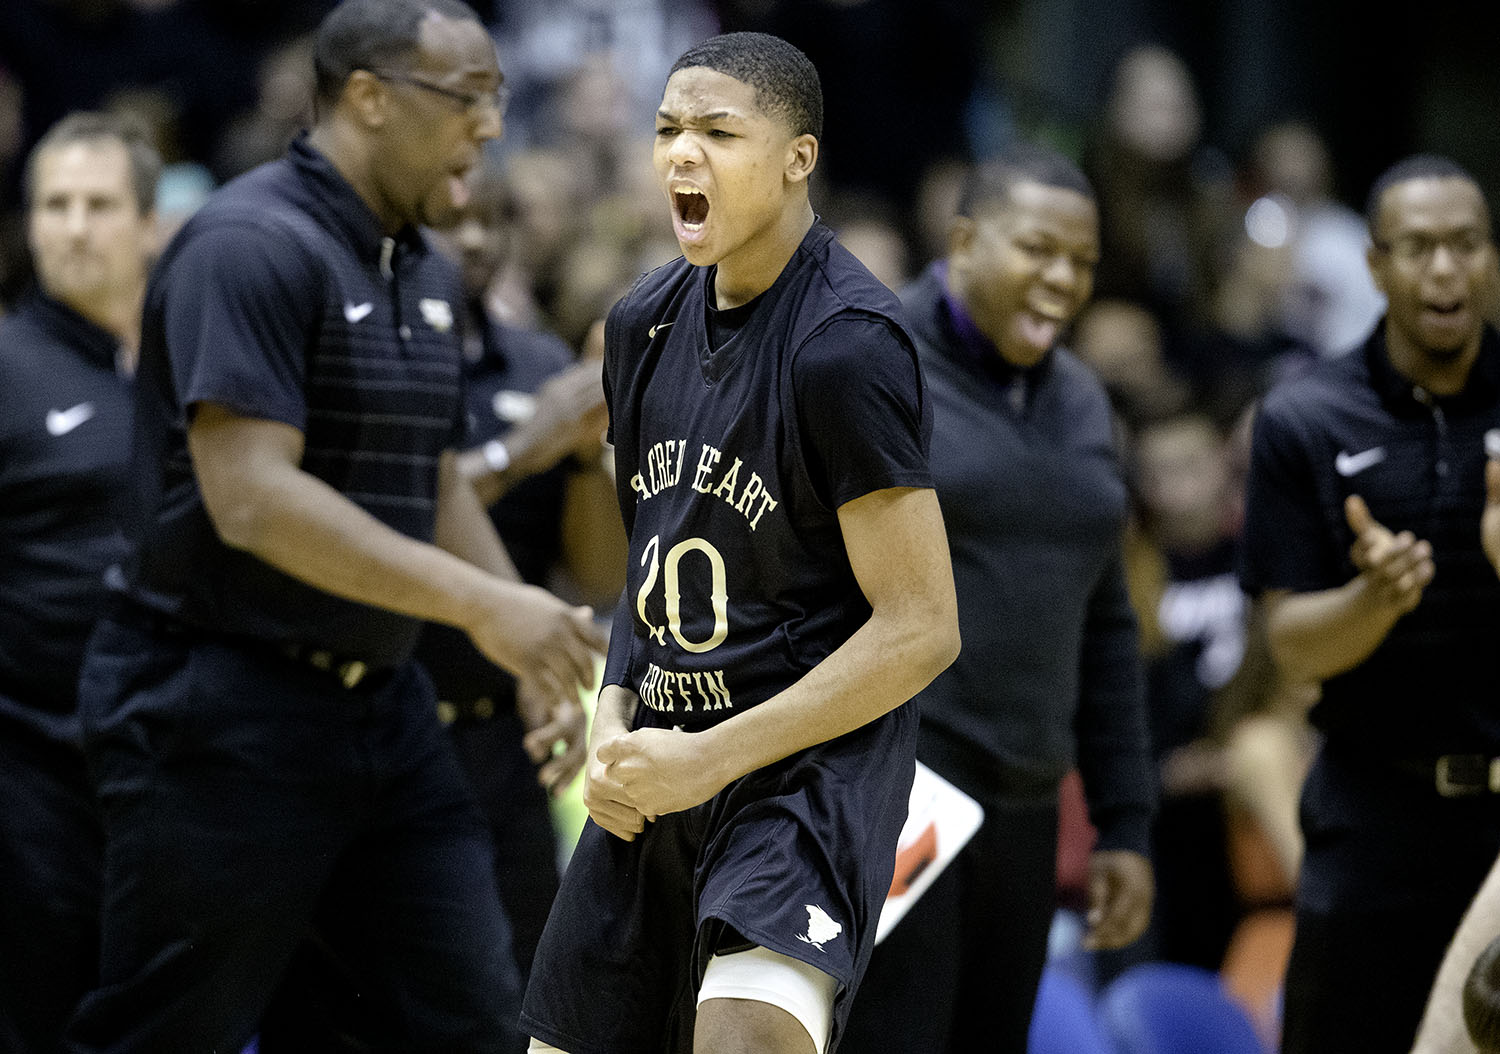 Sacred Heart-Griffin Andrew Schluter celebrates after the Cyclones defeated Lanphier during the Boys City Tournament at the Bank of Springfield Center Thursday, Jan. 17, 2019.  [Ted Schurter/The State Journal-Register]